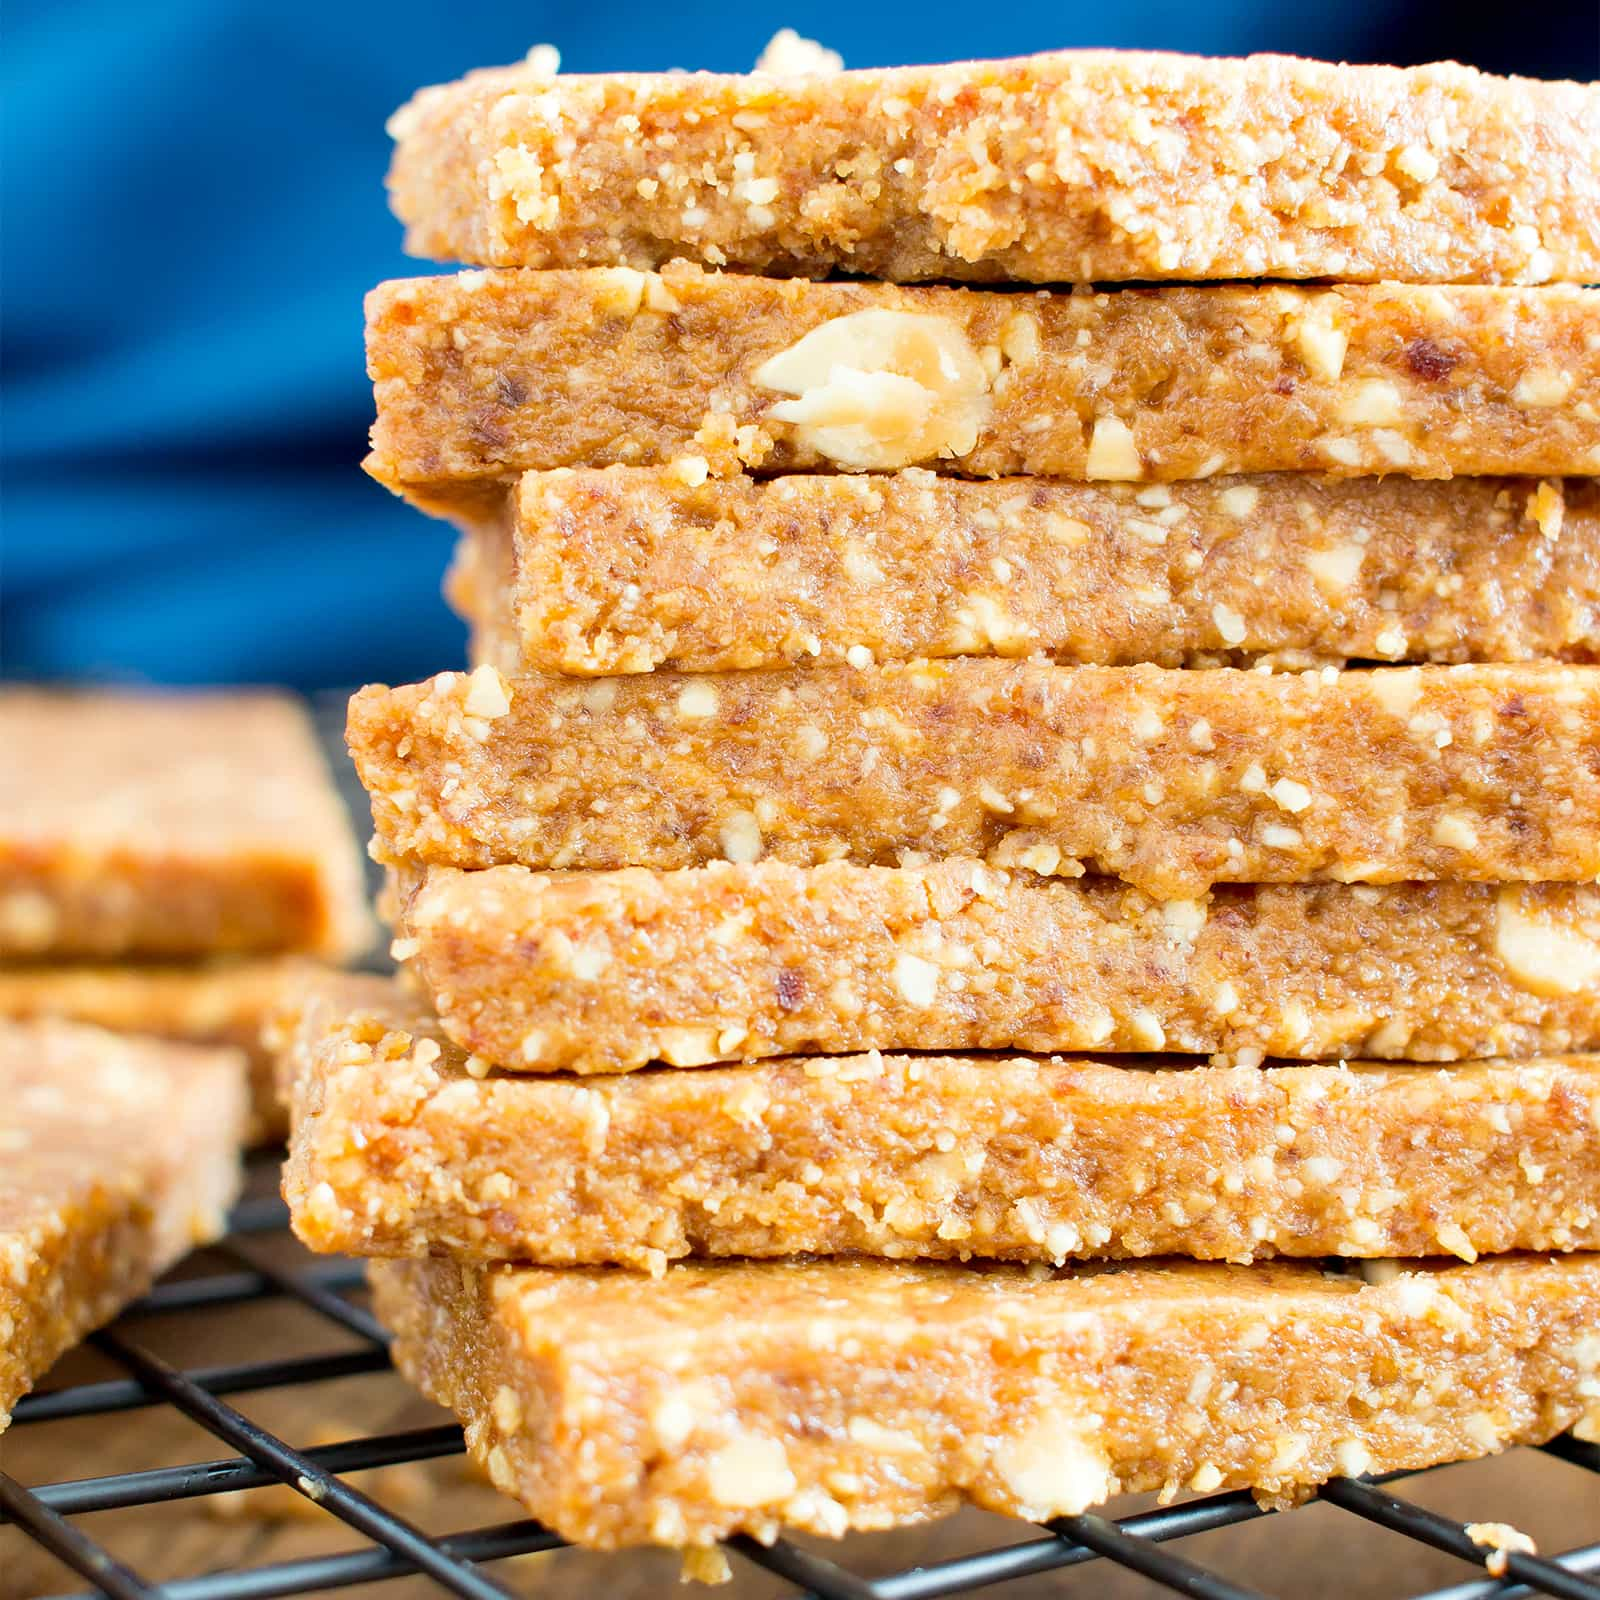 4 Ingredient No Bake Peanut Butter Cookie Energy Bars